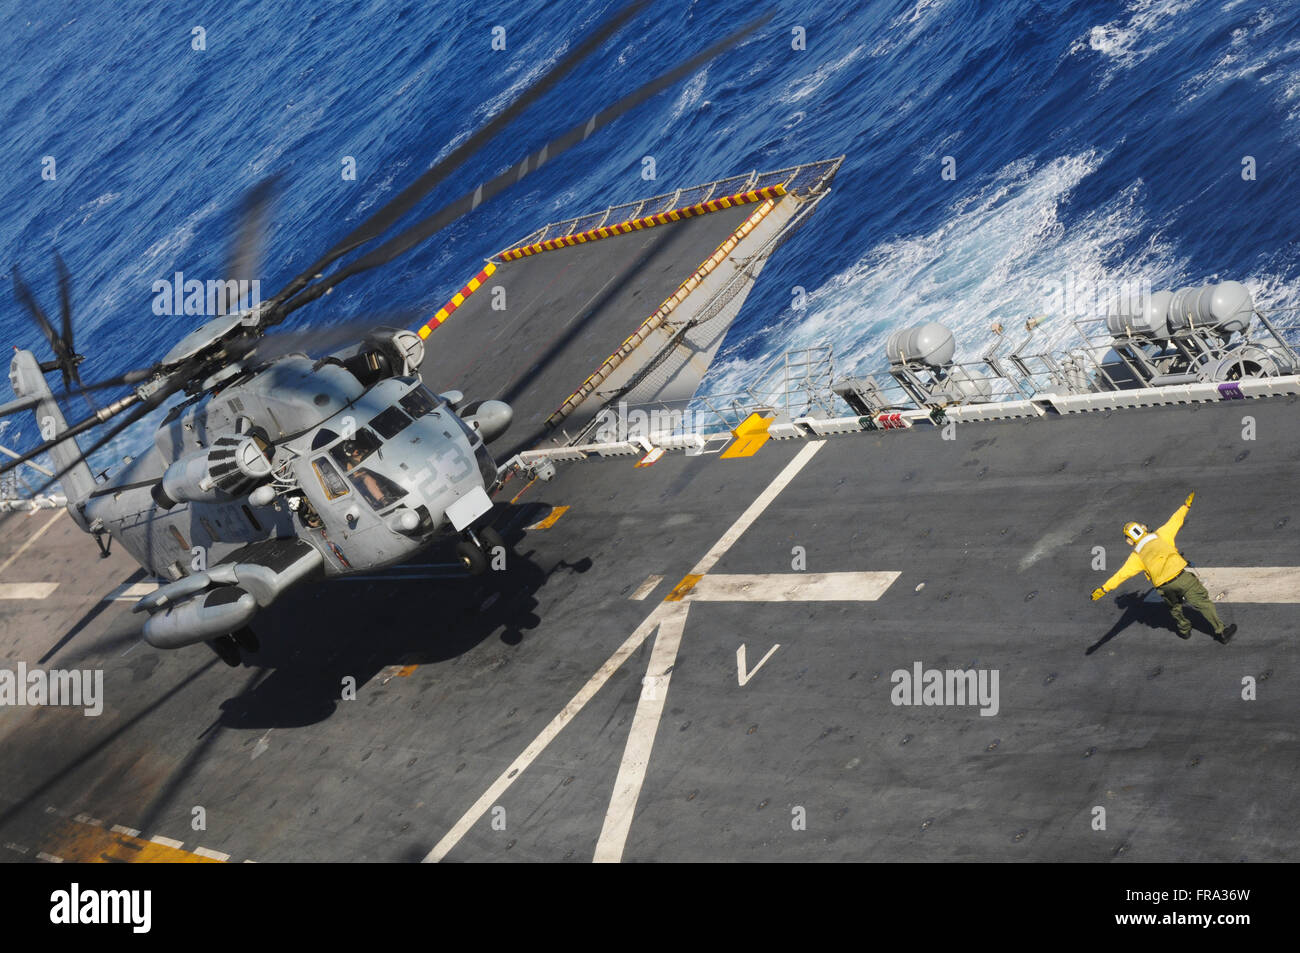 A crewman onboard the USS Peleliu (LHA-5) guides a CH-53 Sea Stallion helicopter in for a landing; Hawaii, USA - Stock Image